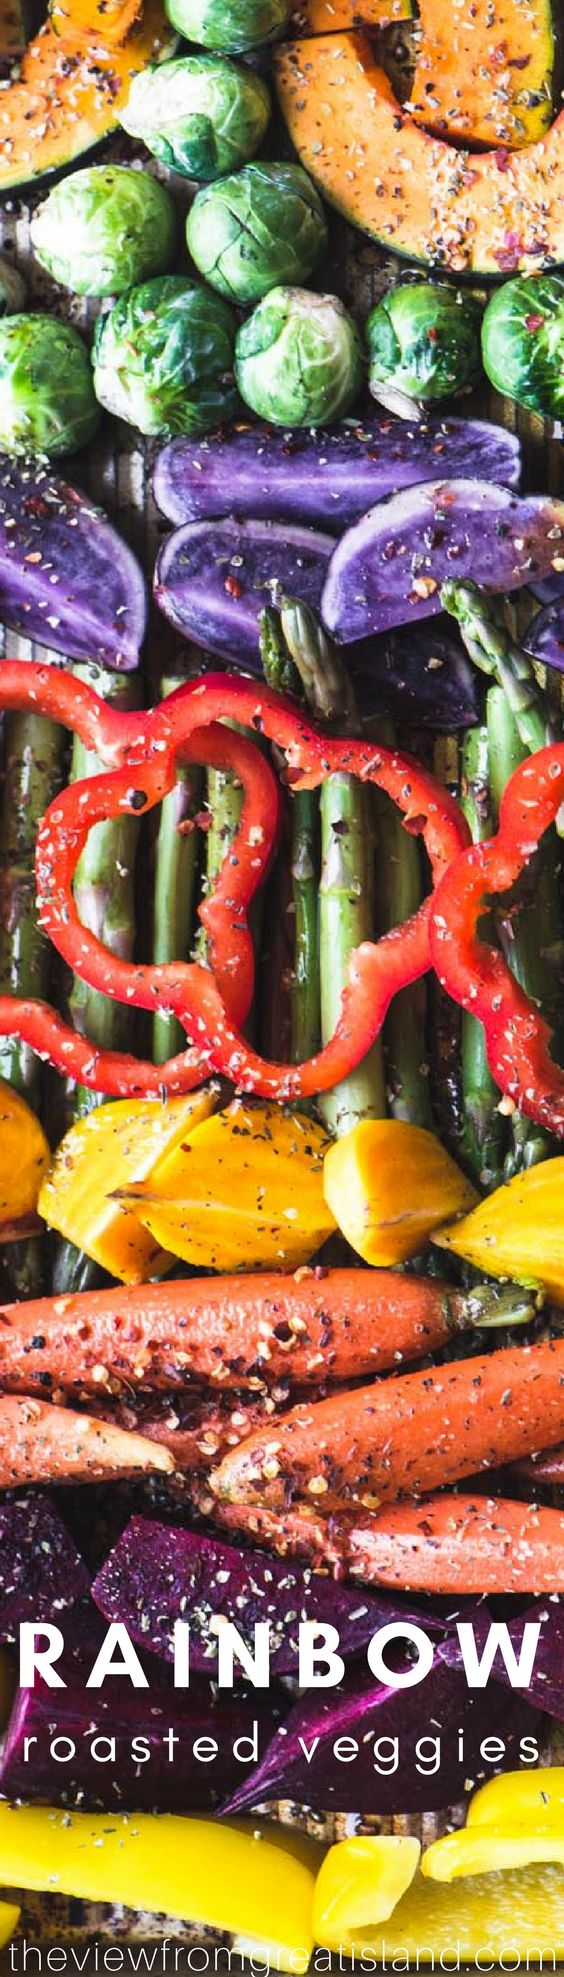 Easy Roasted Rainbow Vegetables ~ this super easy sheet pan side dish wakes up your dinner table with a pop of healthy delicious color ~ let's banish those boring beige meals once and for all! #rainbowrecipe #vegetables #vegan #glutenfree @whole30 #paleo #weightwatchers #sidedish #holidaysidedish #sheetpan #healthy #cleaneating #colorfulrecipe